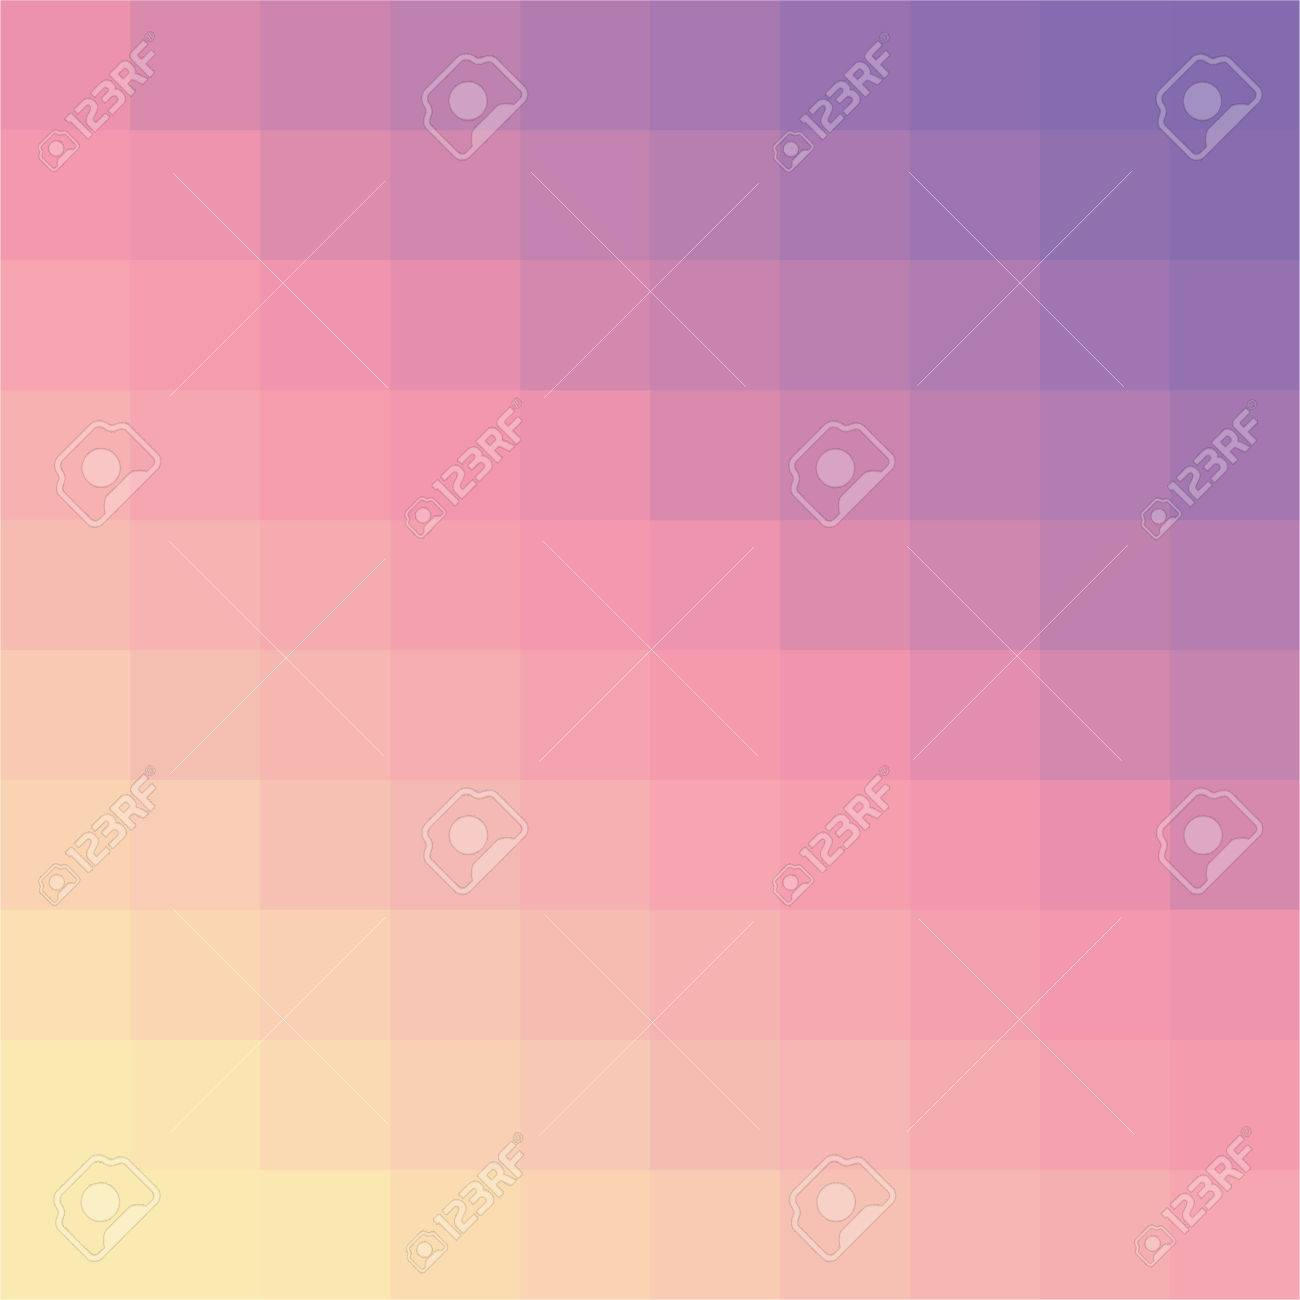 Simple colorful mosaic background for your designs Stock Vector - 7329507